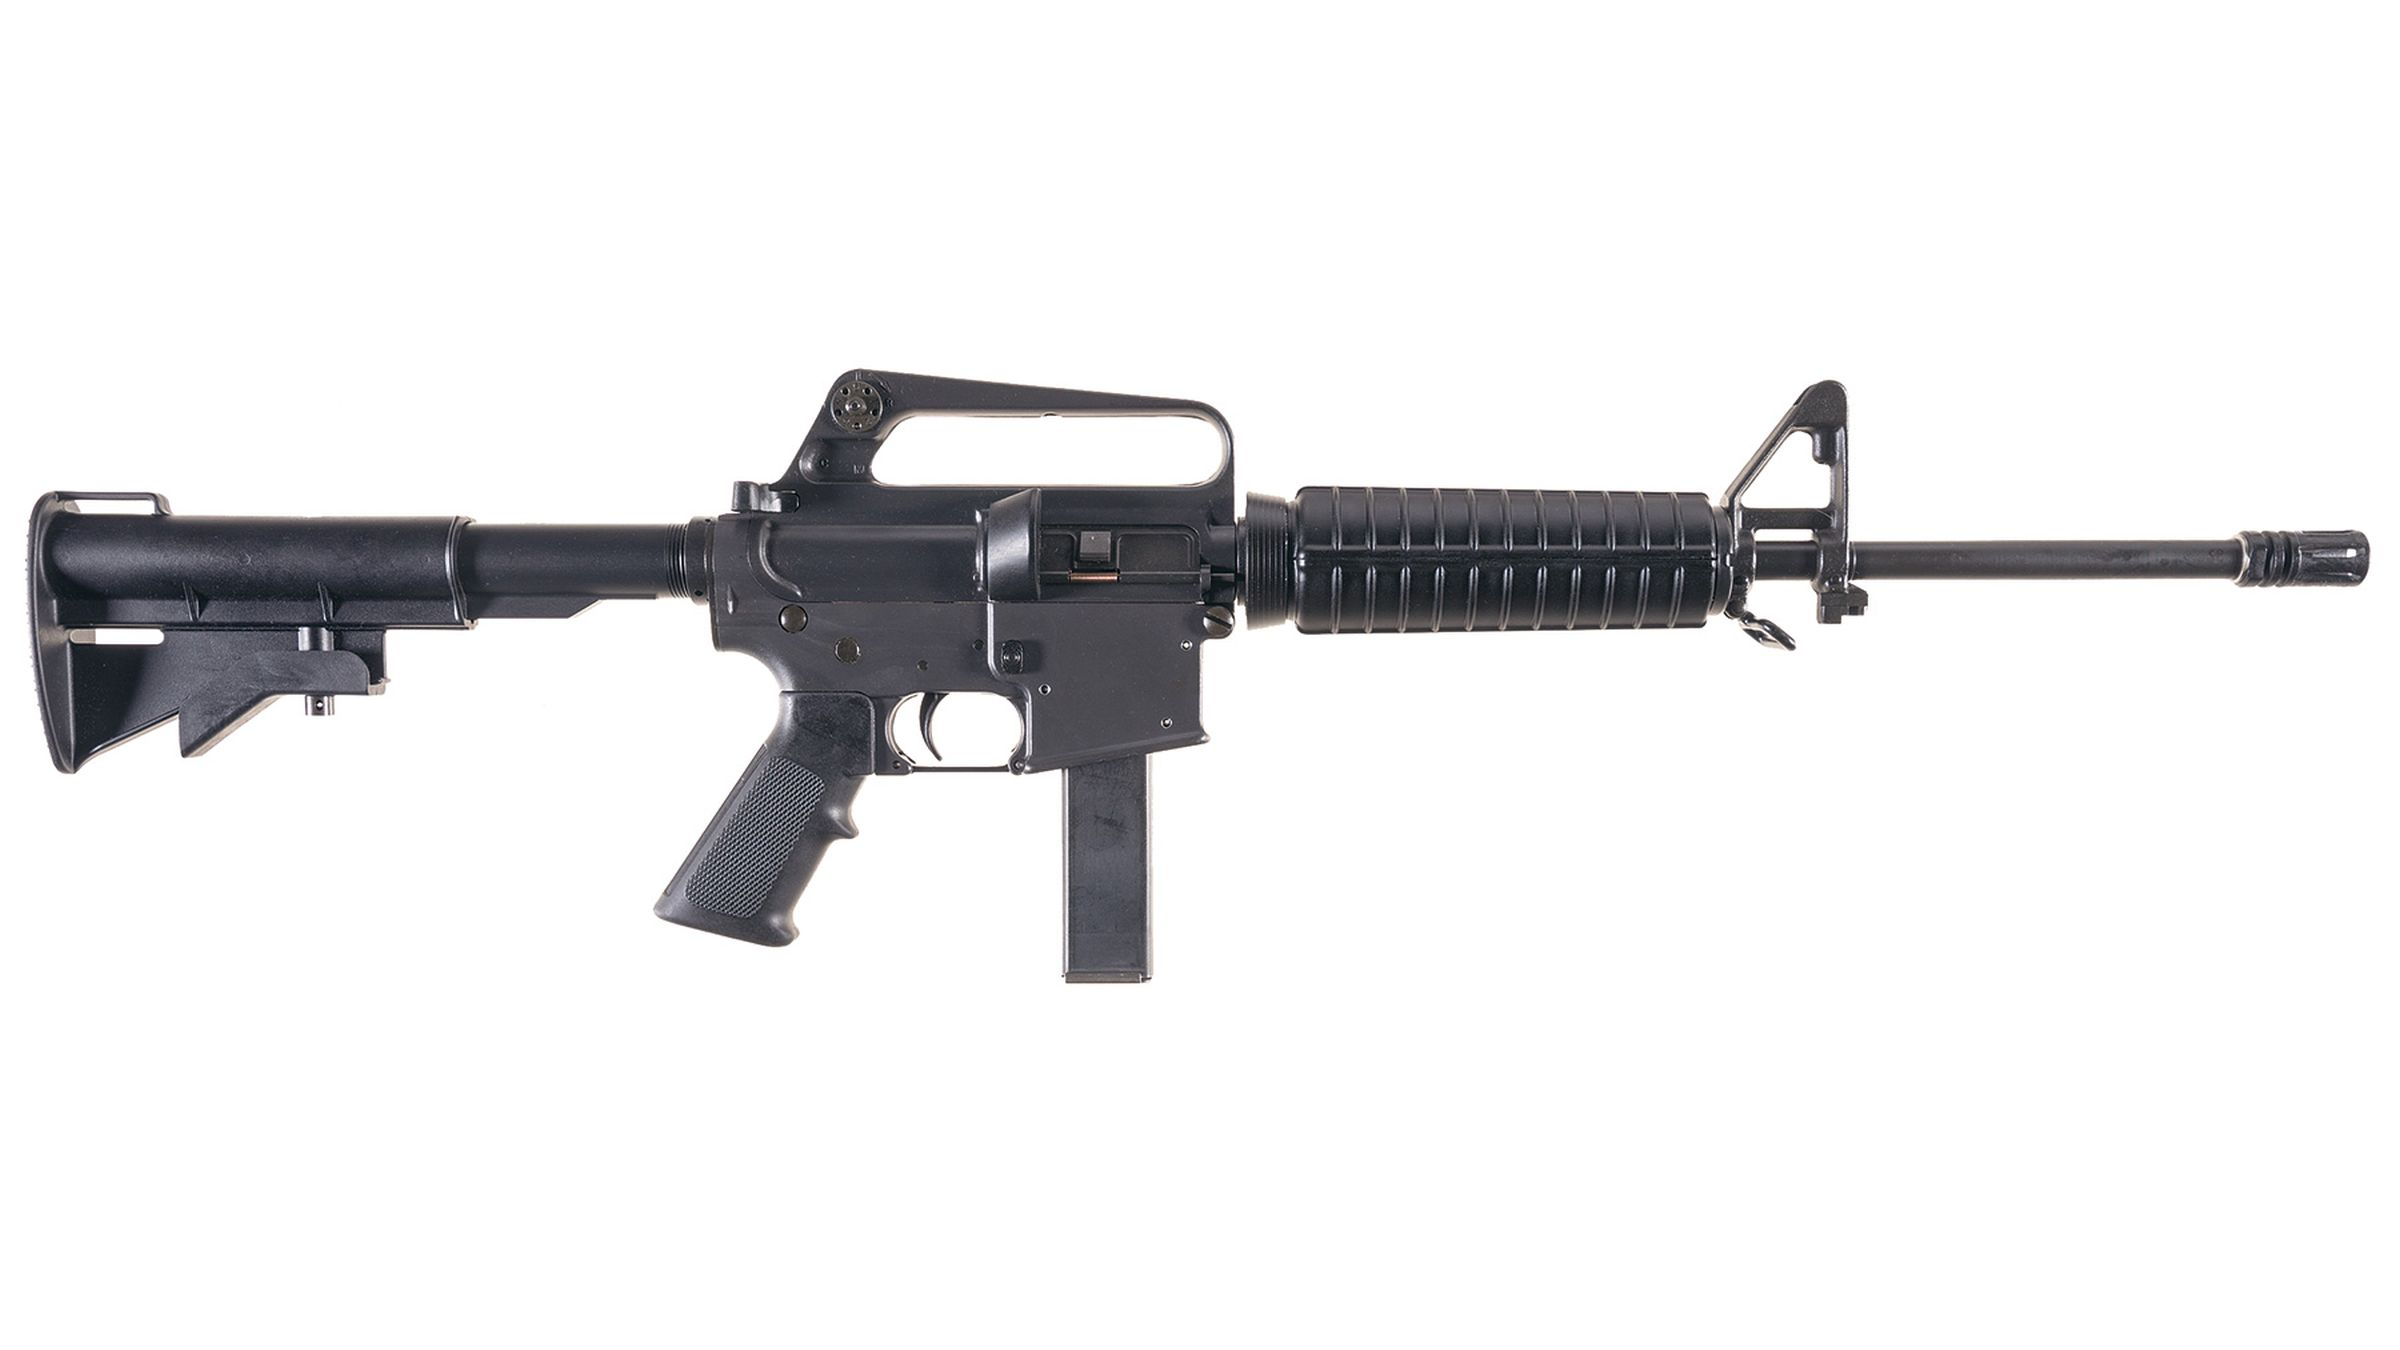 Colt AR-15 9mm Semi-Automatic Carbine with Extra Magazine